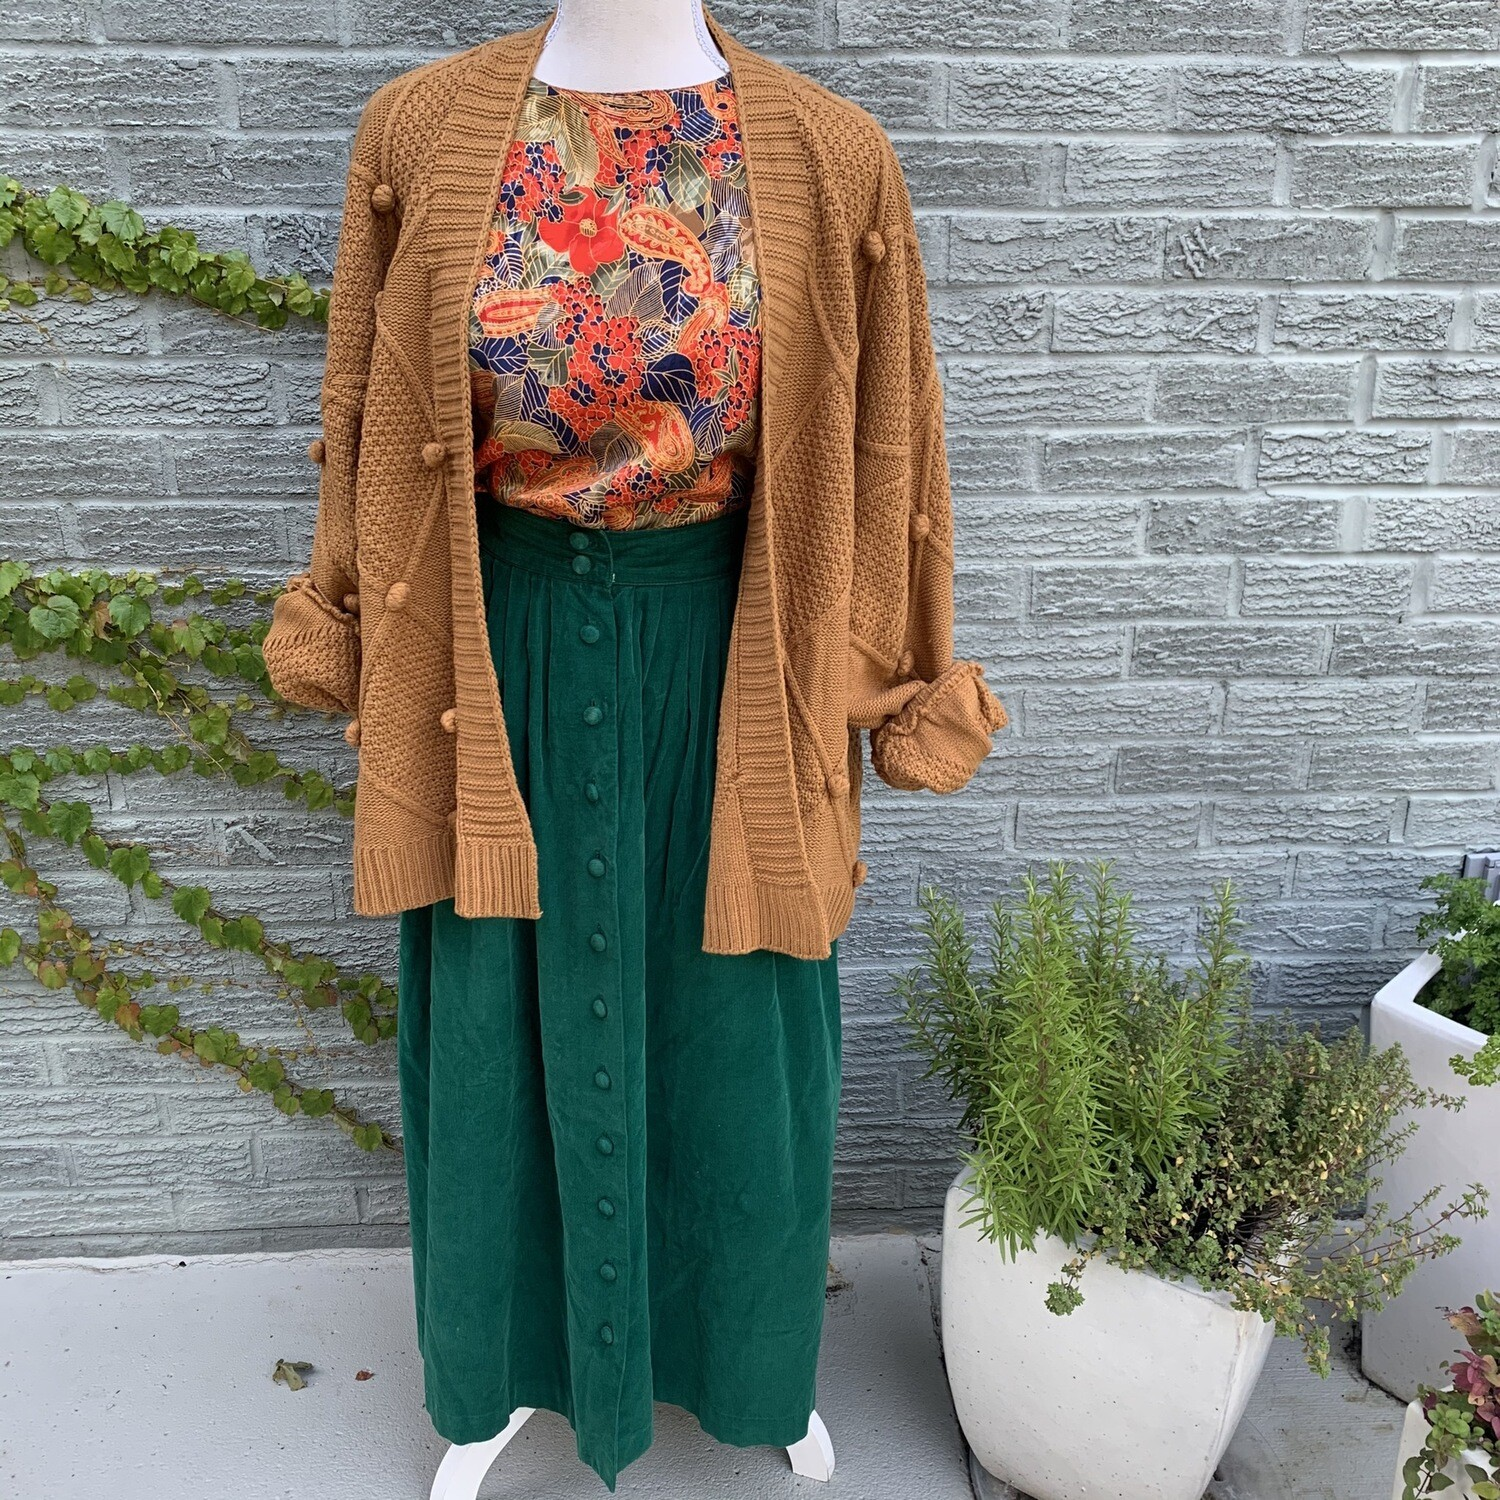 Cable Knit Sweater W/ Puff Balls